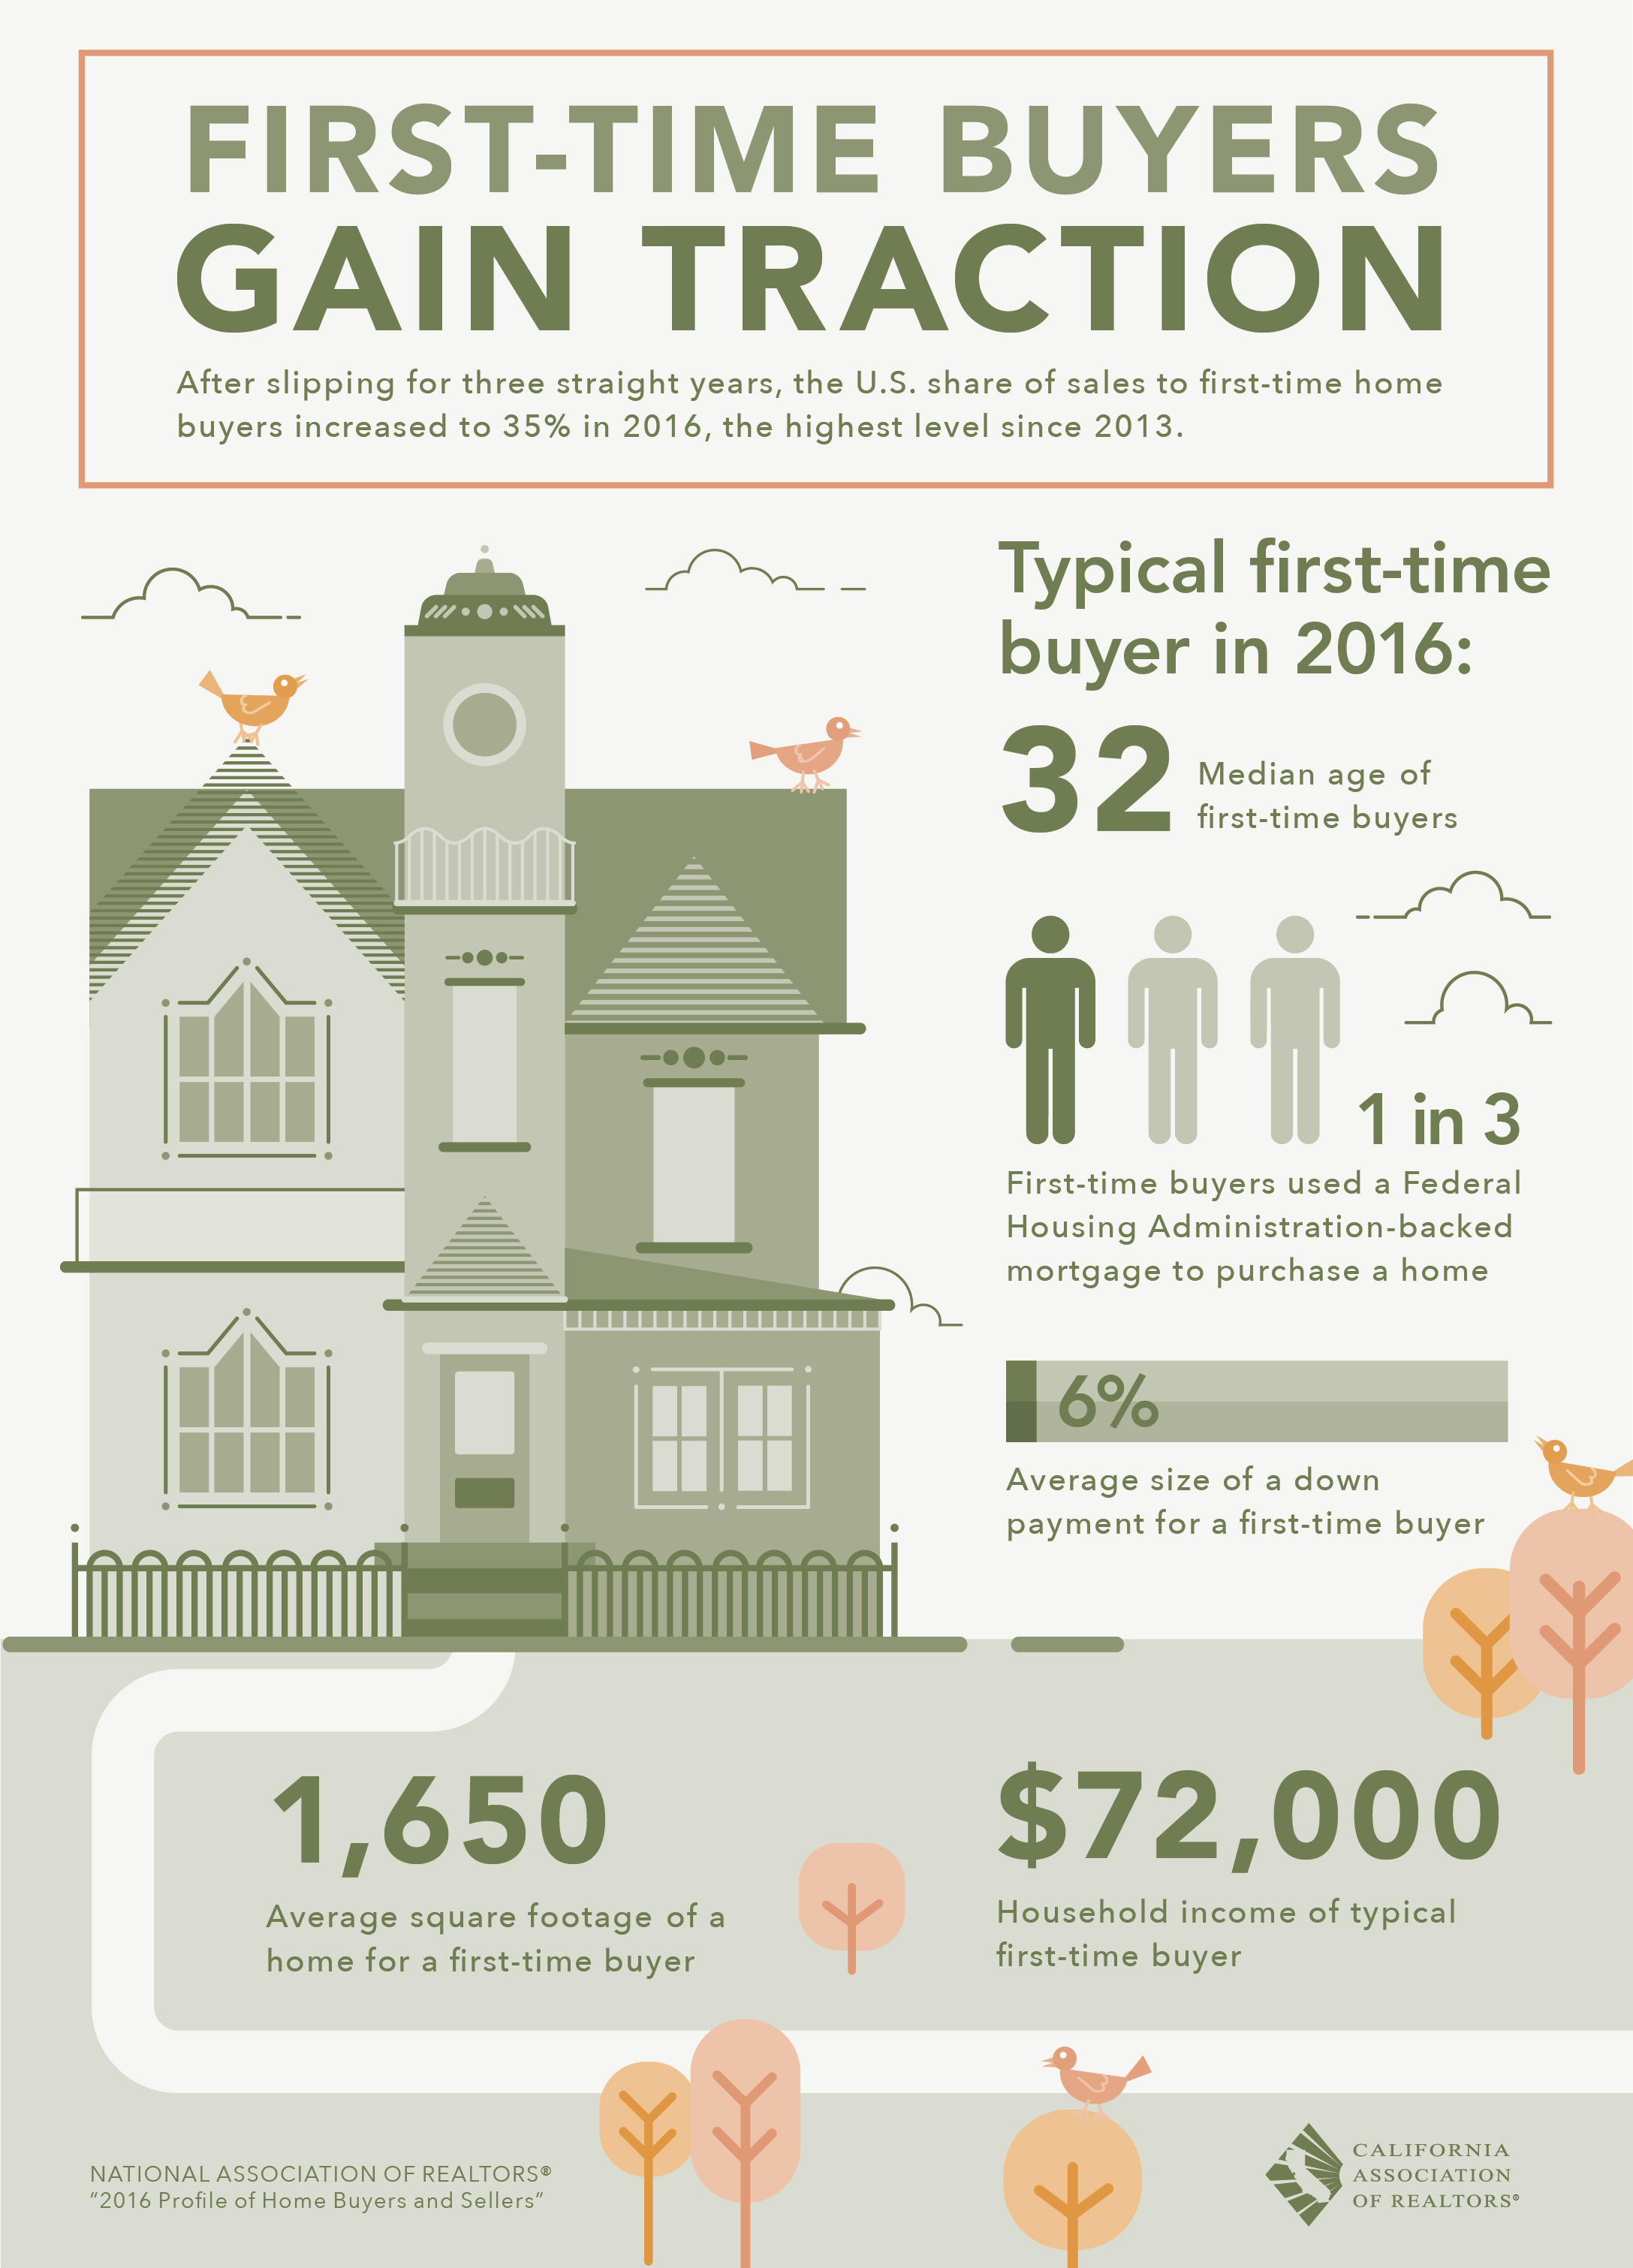 First-Time Buyers gain traction. After slipping for three straight years, the U.S. share of sales to first-time home buyers increased to 35% in 2016, the highest level since 2013.